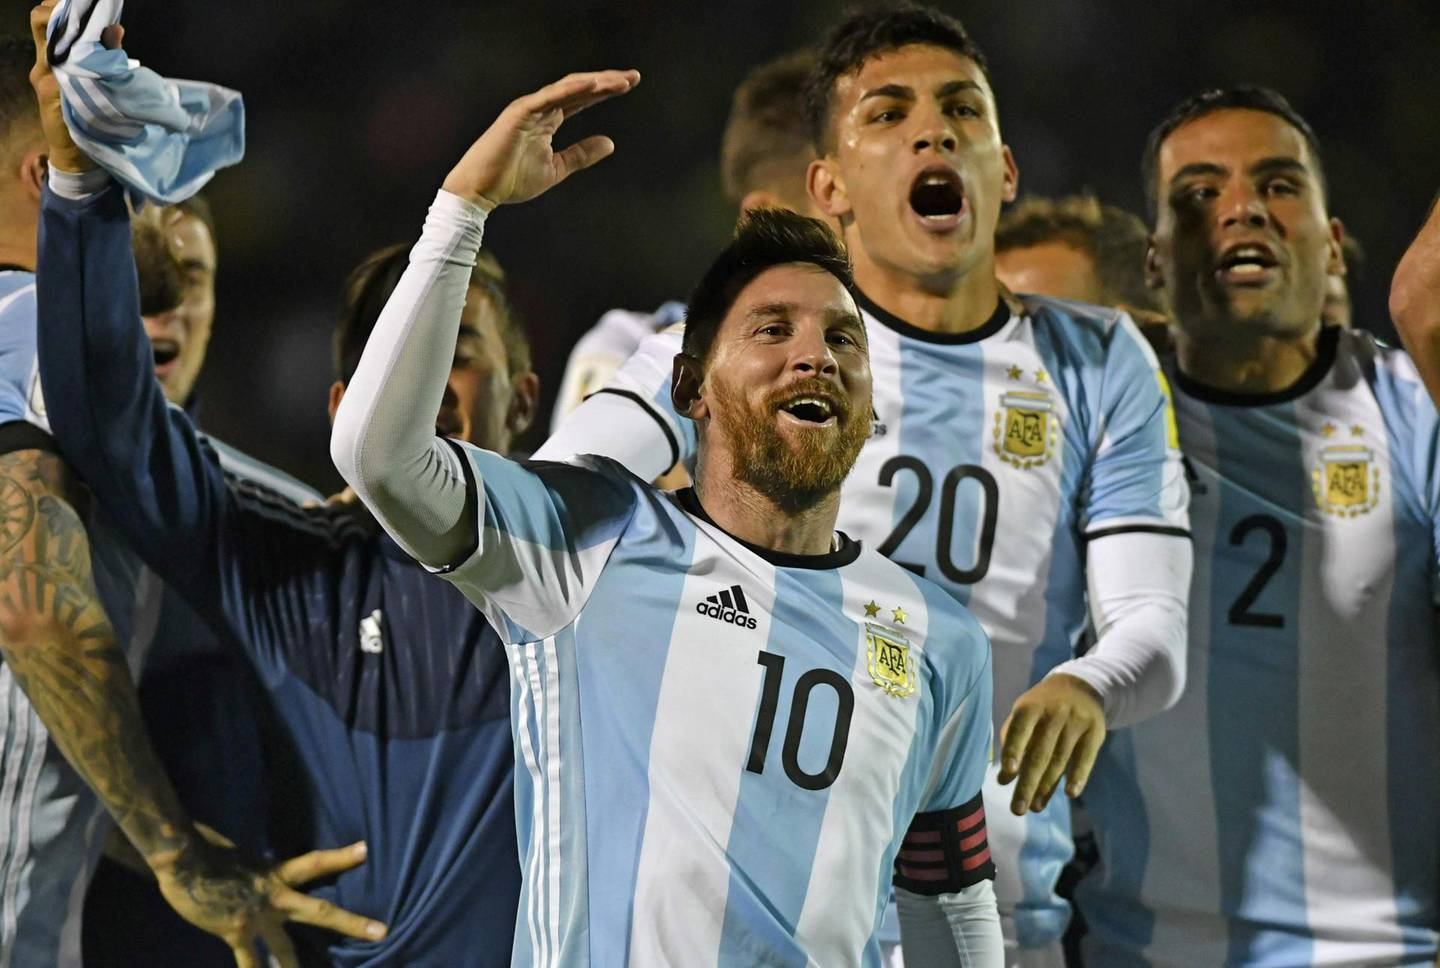 (FILES) This file photo taken on October 10, 2017 shows Argentina's Lionel Messi (C) celebrating after defeating Ecuador and qualifying to the 2018 World Cup football tournament, in Quito, Ecuador. The World Cup 2018 group stage draw for the June 14-July 15 tournament is to take place on December 1, 2017 in Moscow. / AFP PHOTO / Juan Ruiz